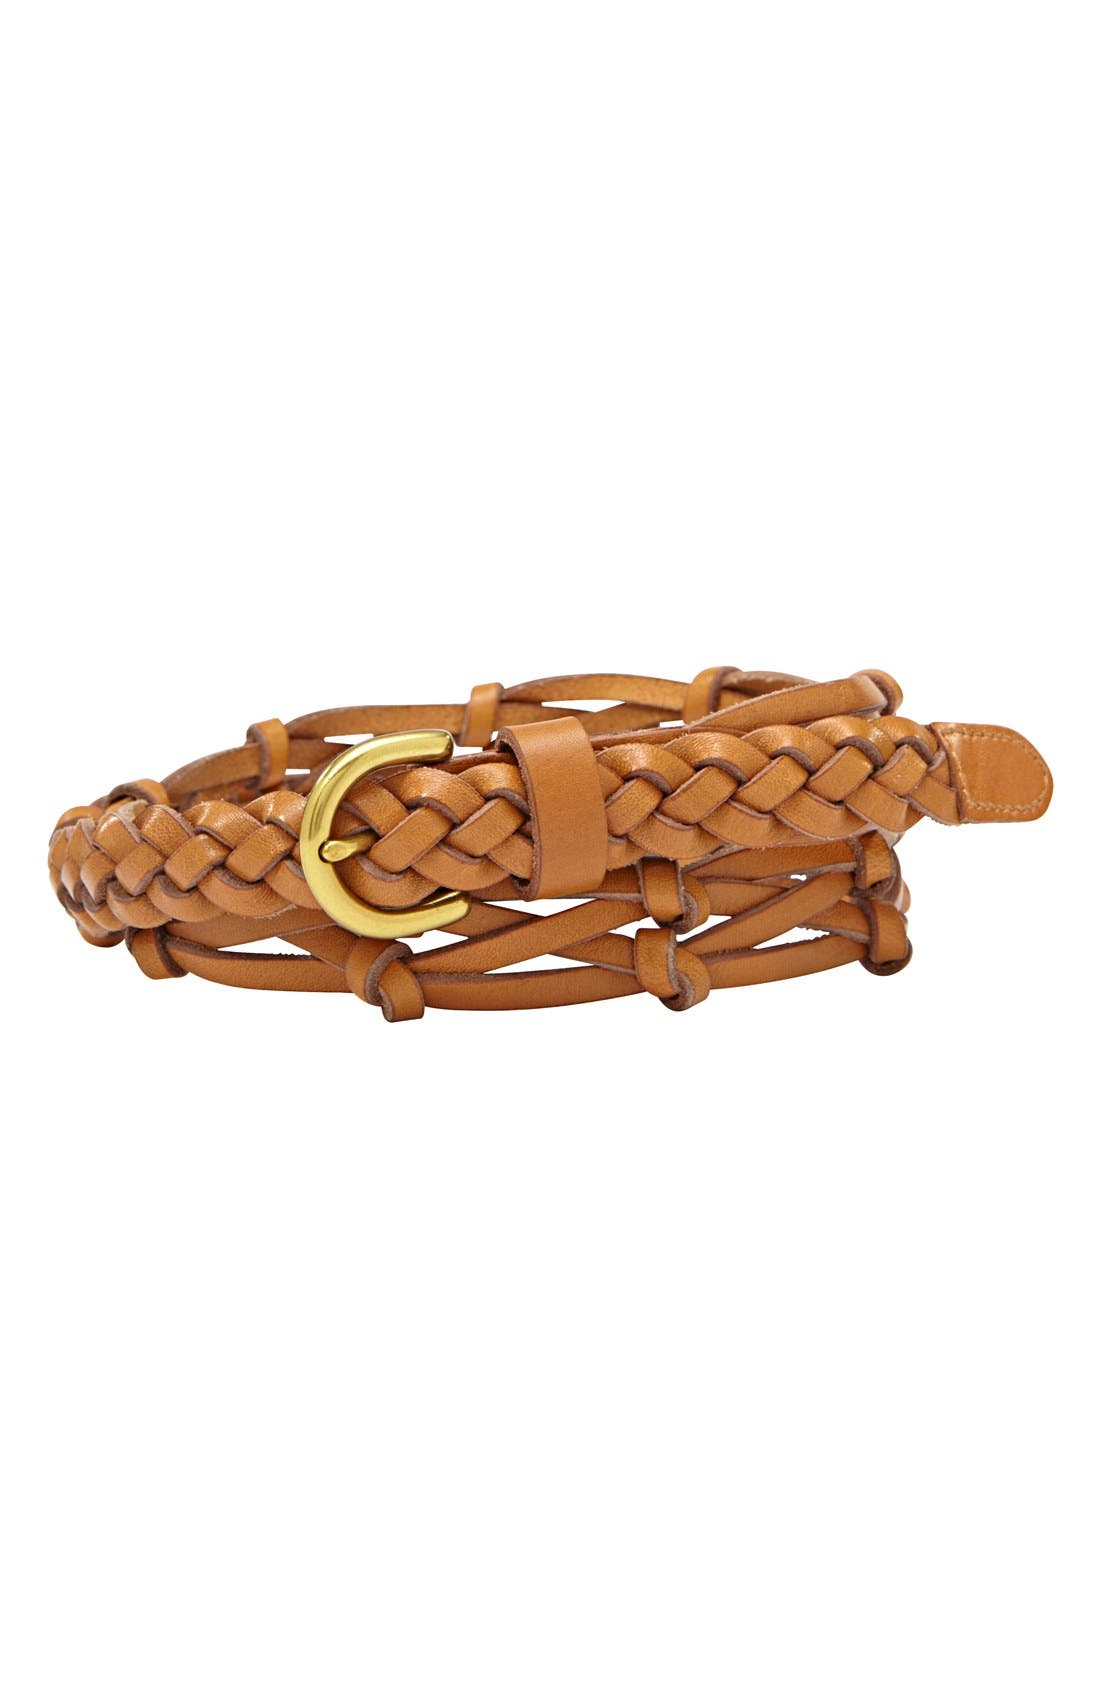 Alternate Image 1 Selected - Fossil Knotted & Woven Leather Belt